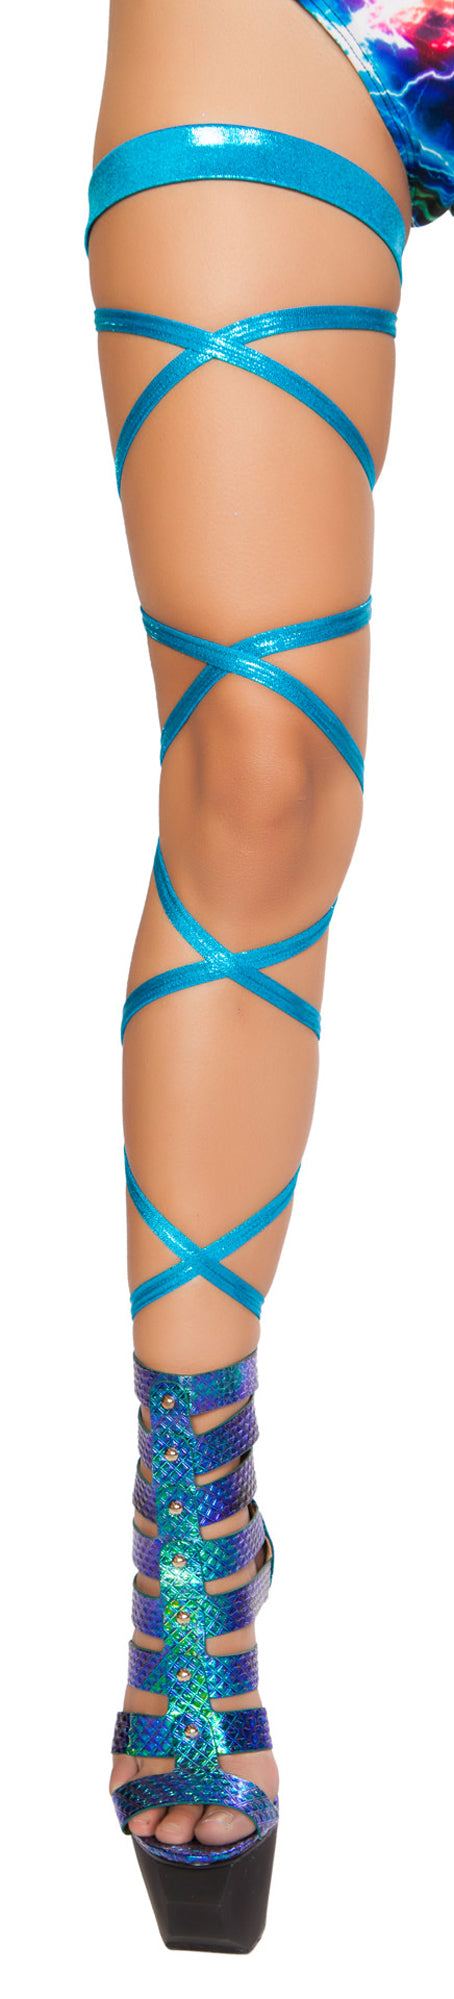 Leg Strap with Attached Garter Turquoise